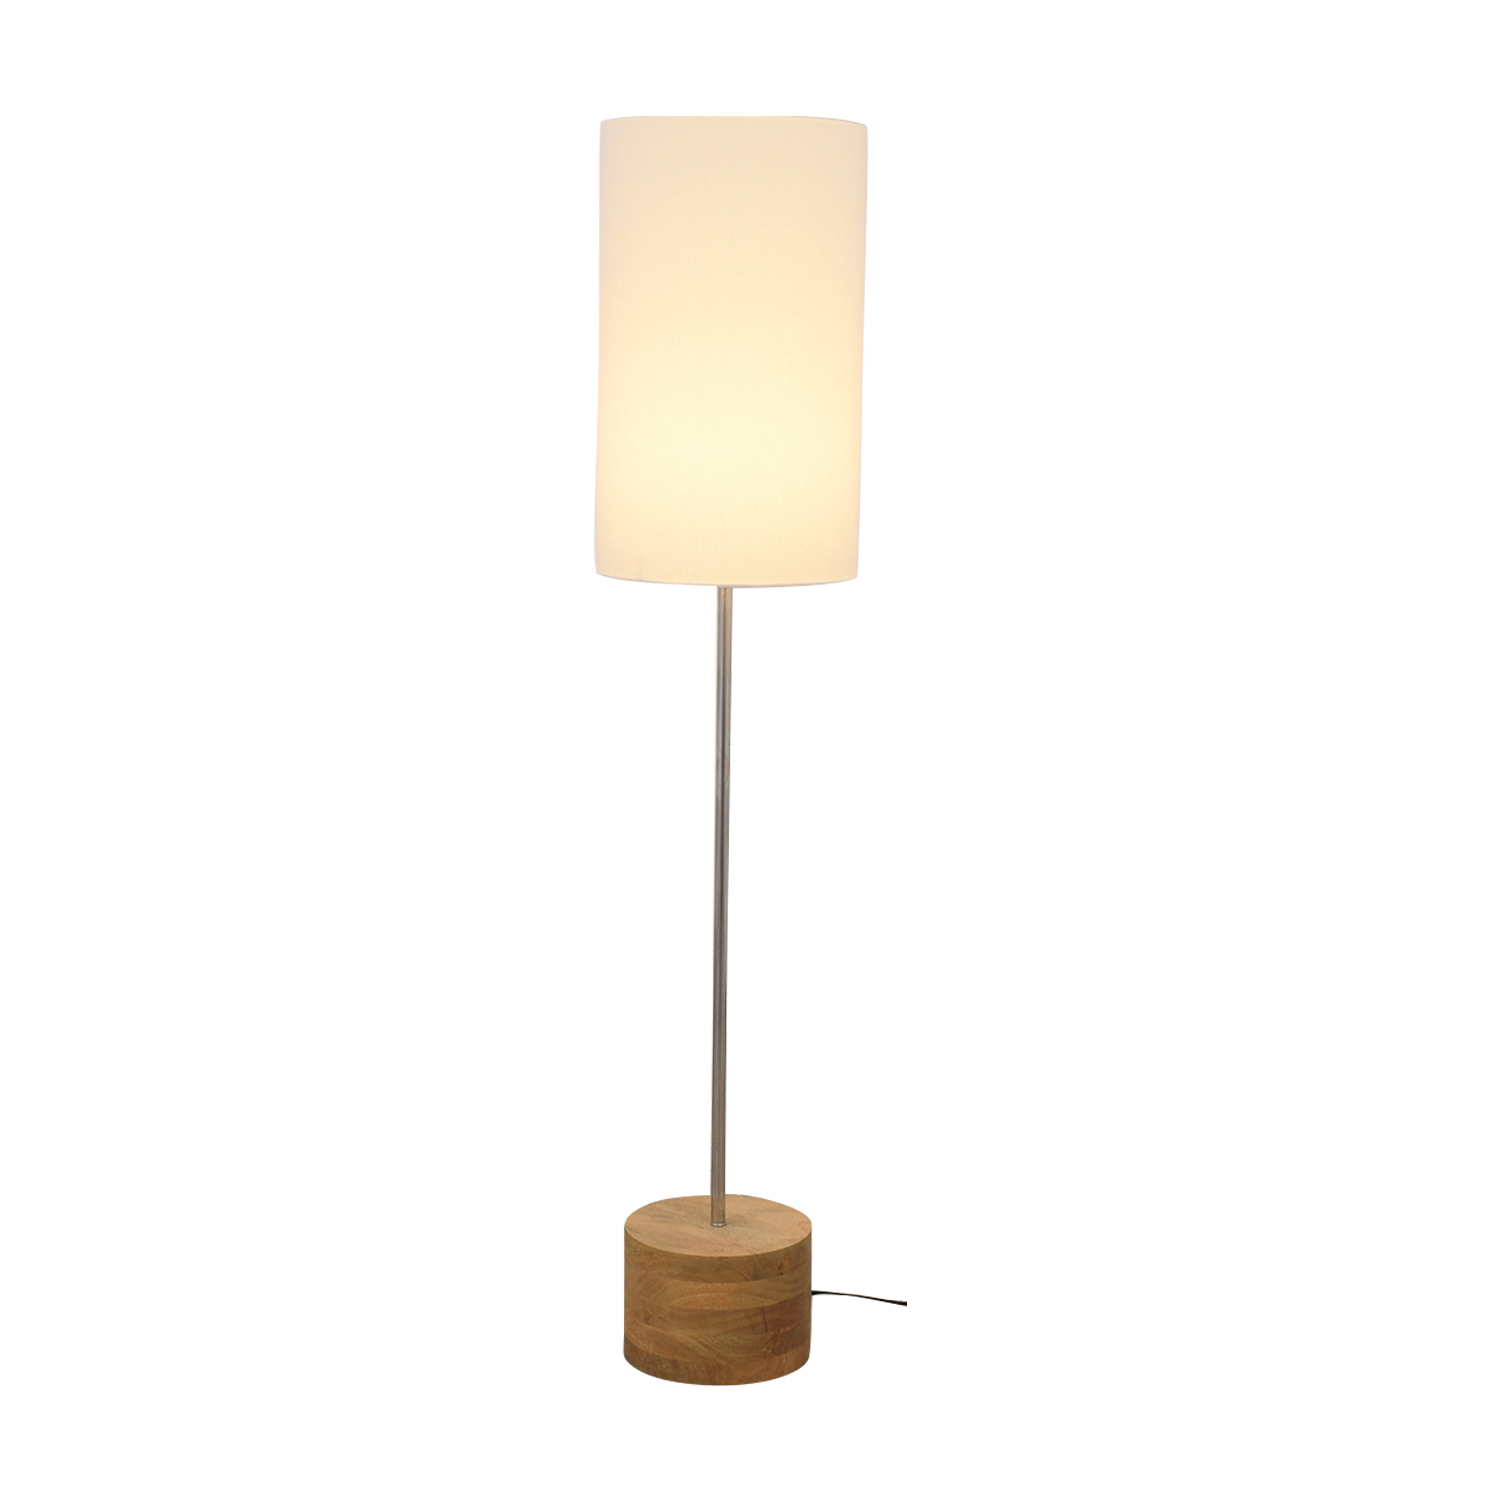 shop Crate & Barrel Tribeca Floor Lamp Crate & Barrel